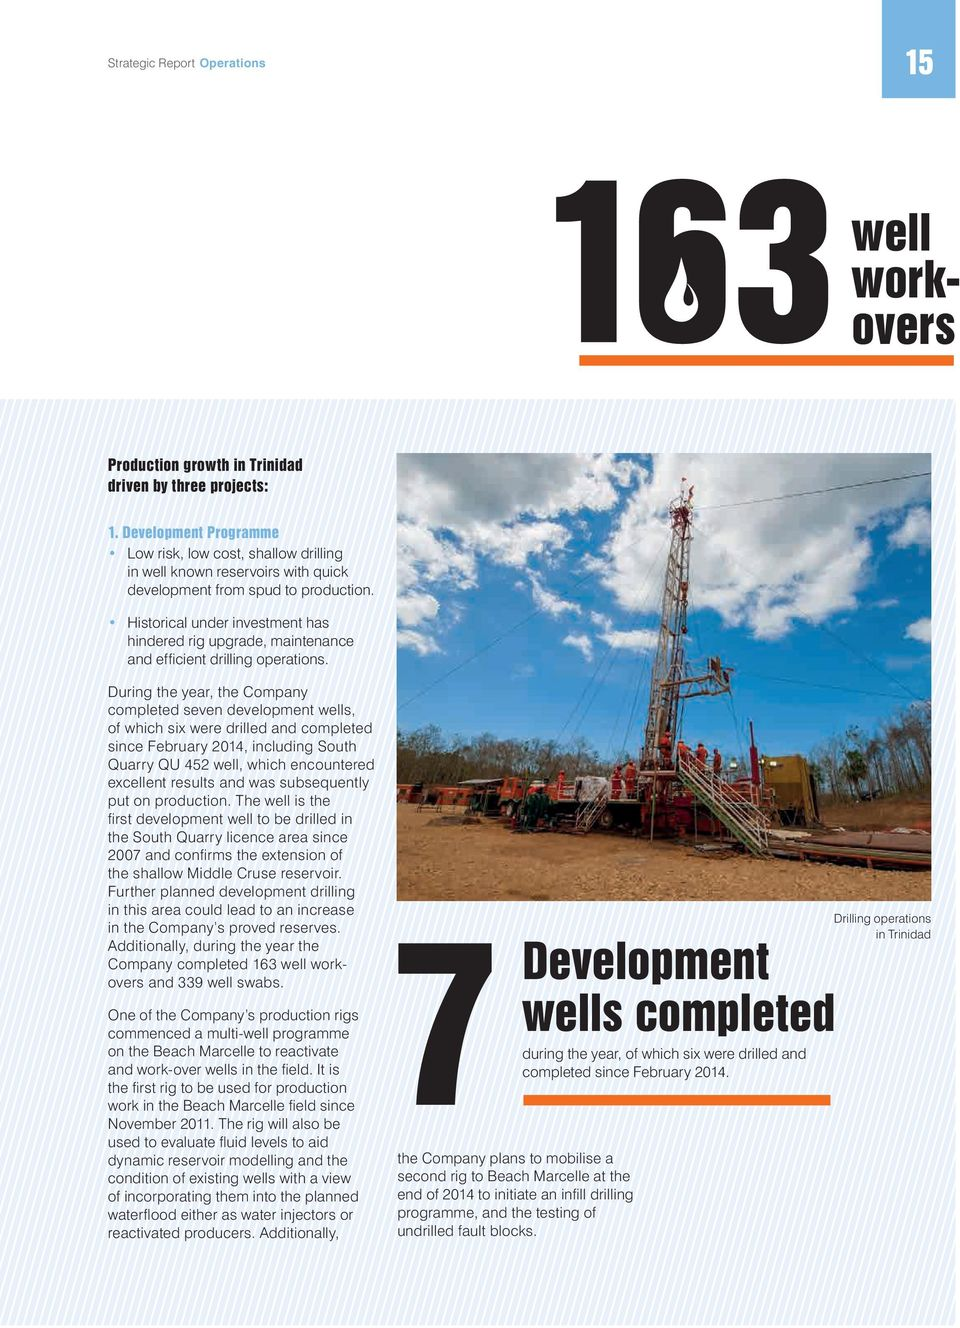 Historical under investment has hindered rig upgrade, maintenance and efficient drilling operations.